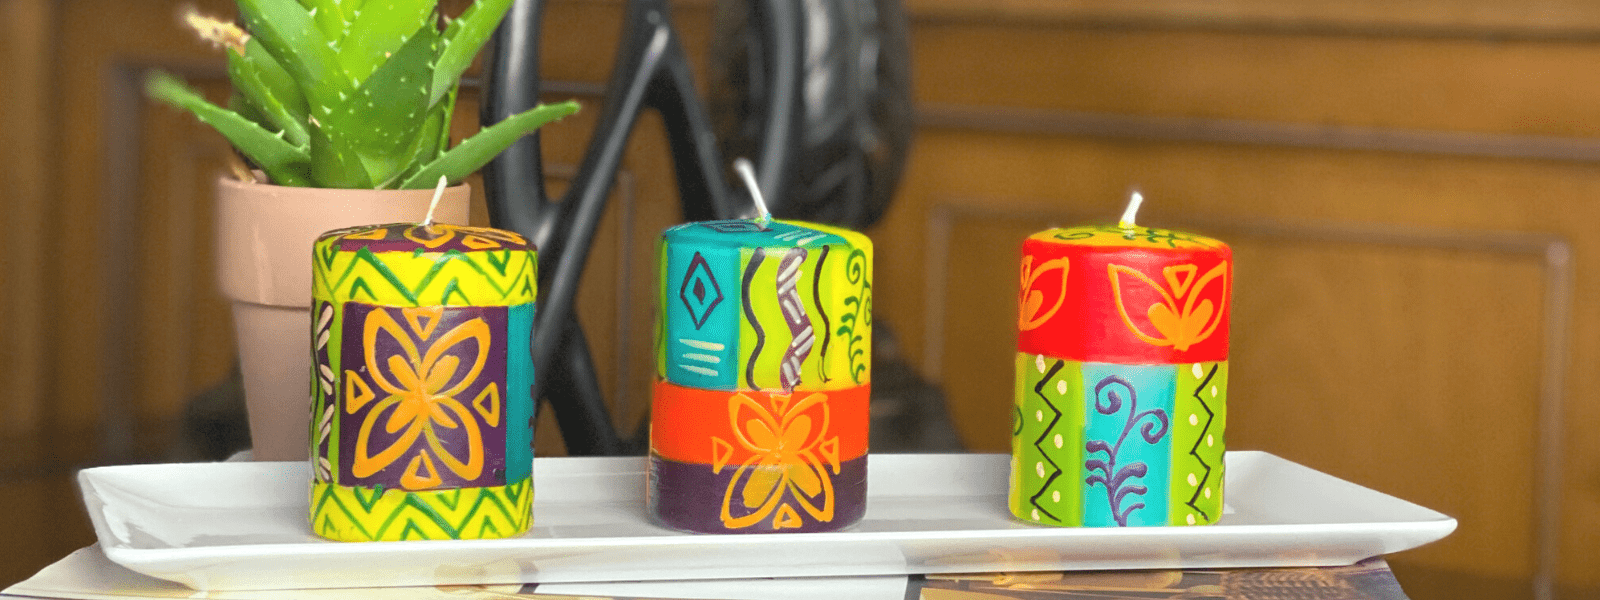 Handpainted Fragrance-free Candles from Kenya